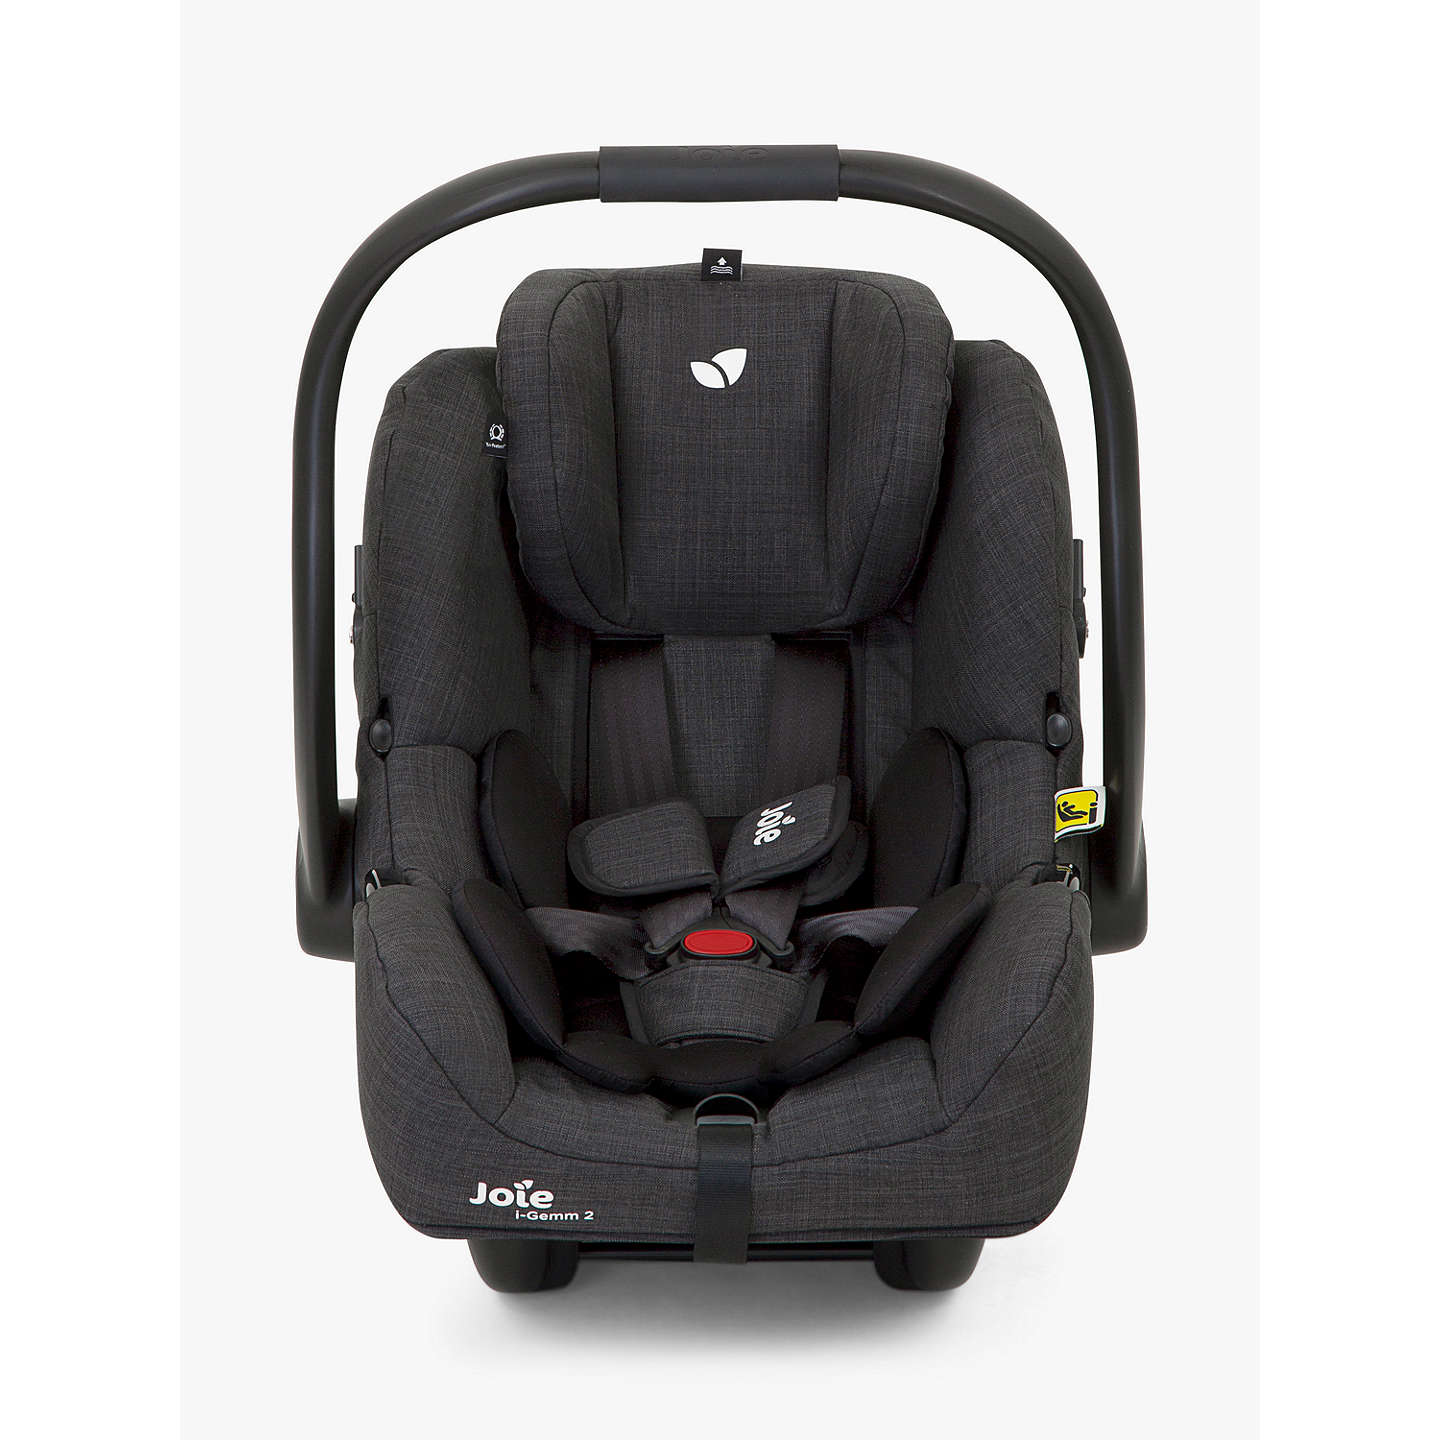 BuyJoie i-Gemm Group 0+ Baby Car Seat, Pavement Grey Online at johnlewis.com